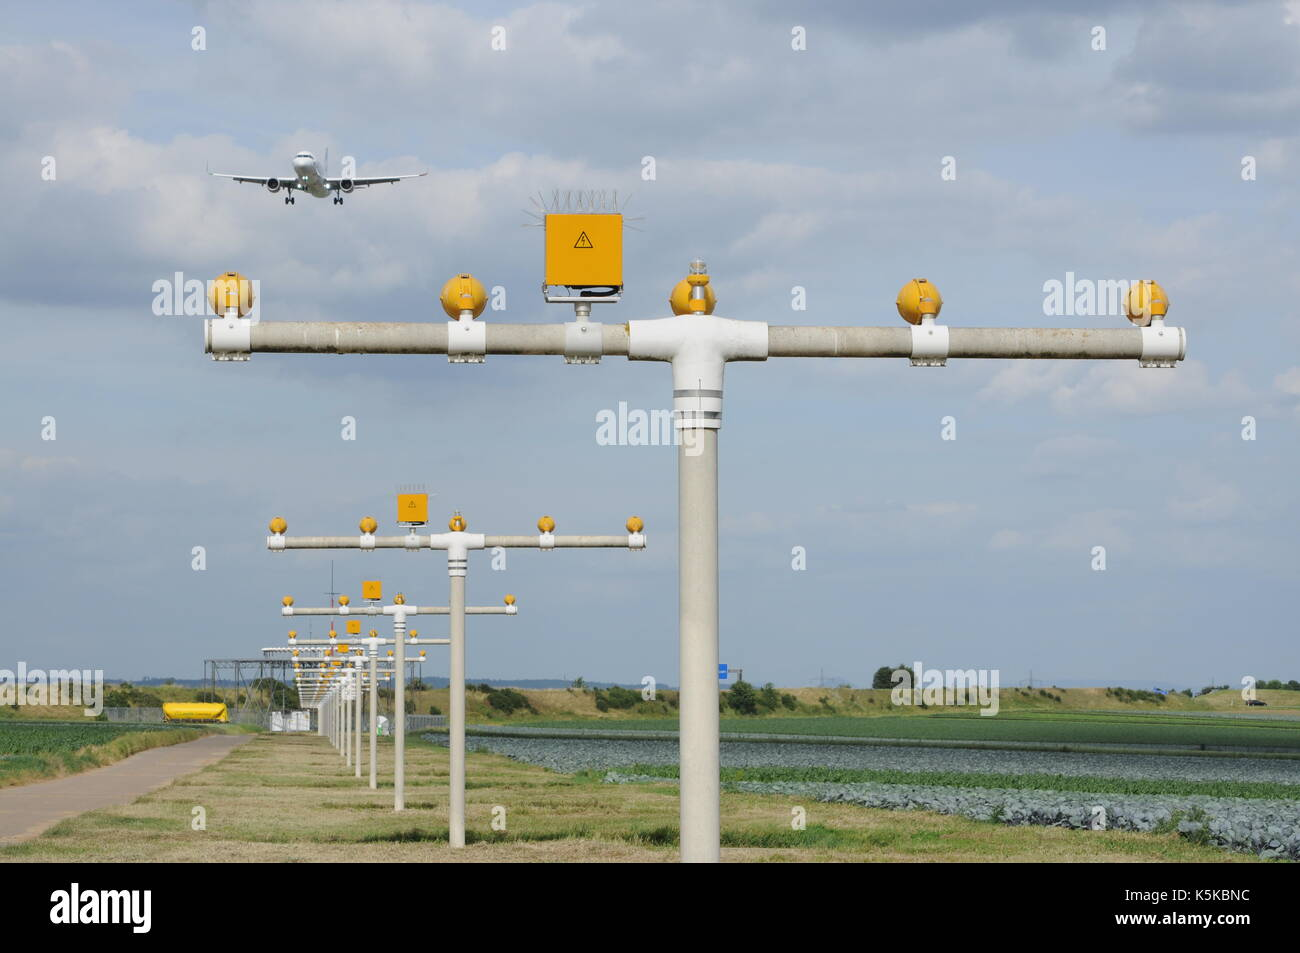 Aircraft and Approach Lights at Airport - Stock Image